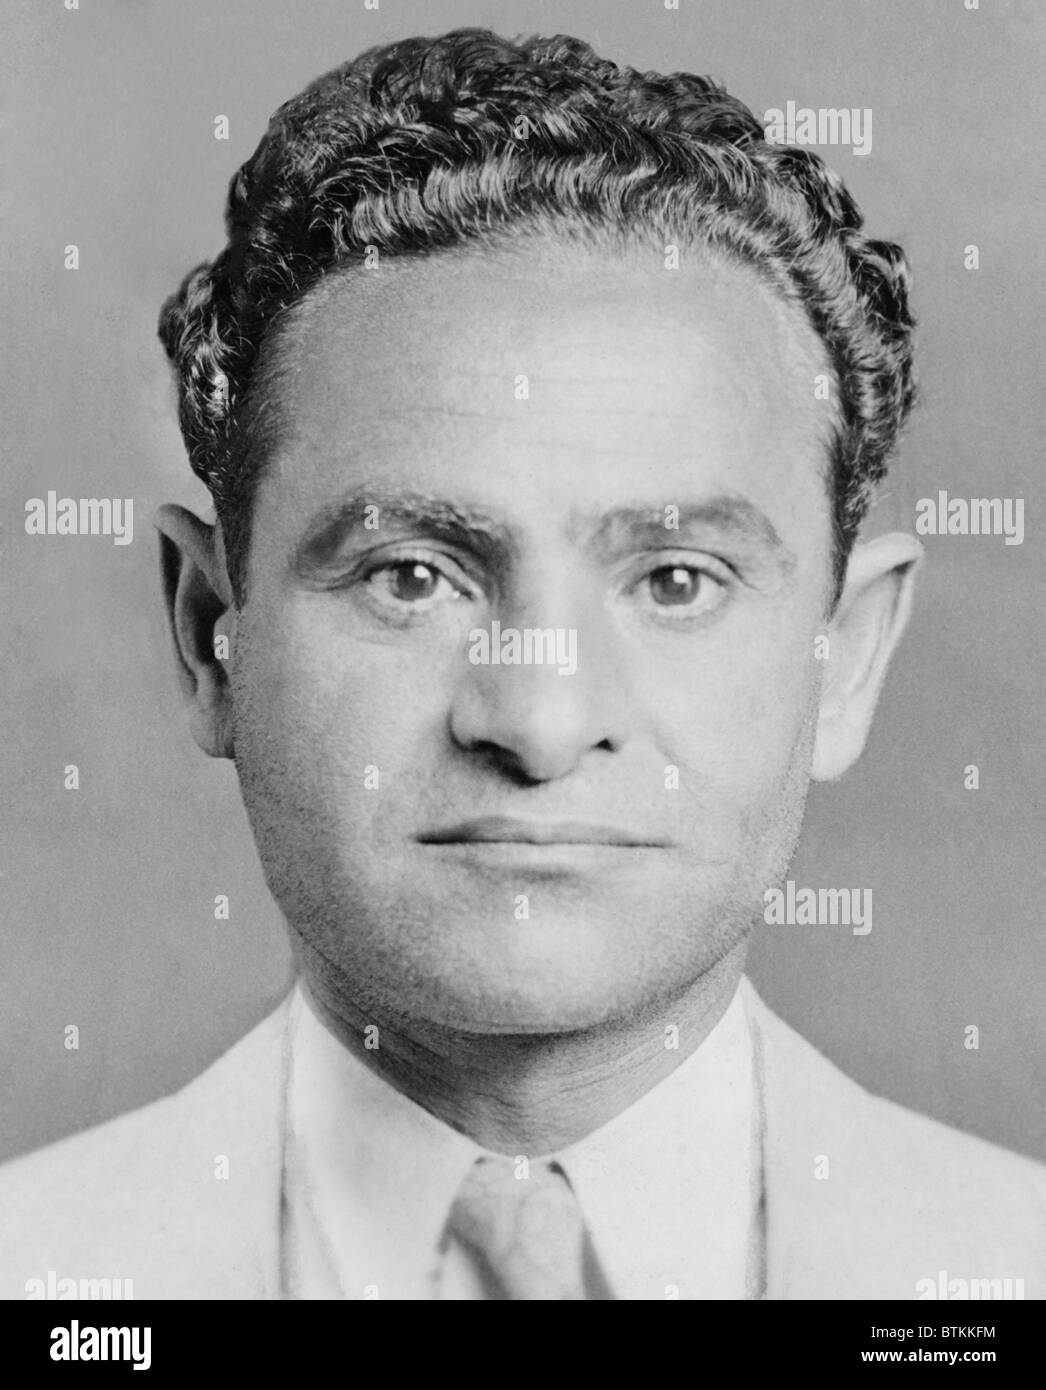 Joseph Amburg (1892-1935), was a New York labor racketeer during the 1920s and 1930s. Joseph worked with his brother - Stock Image